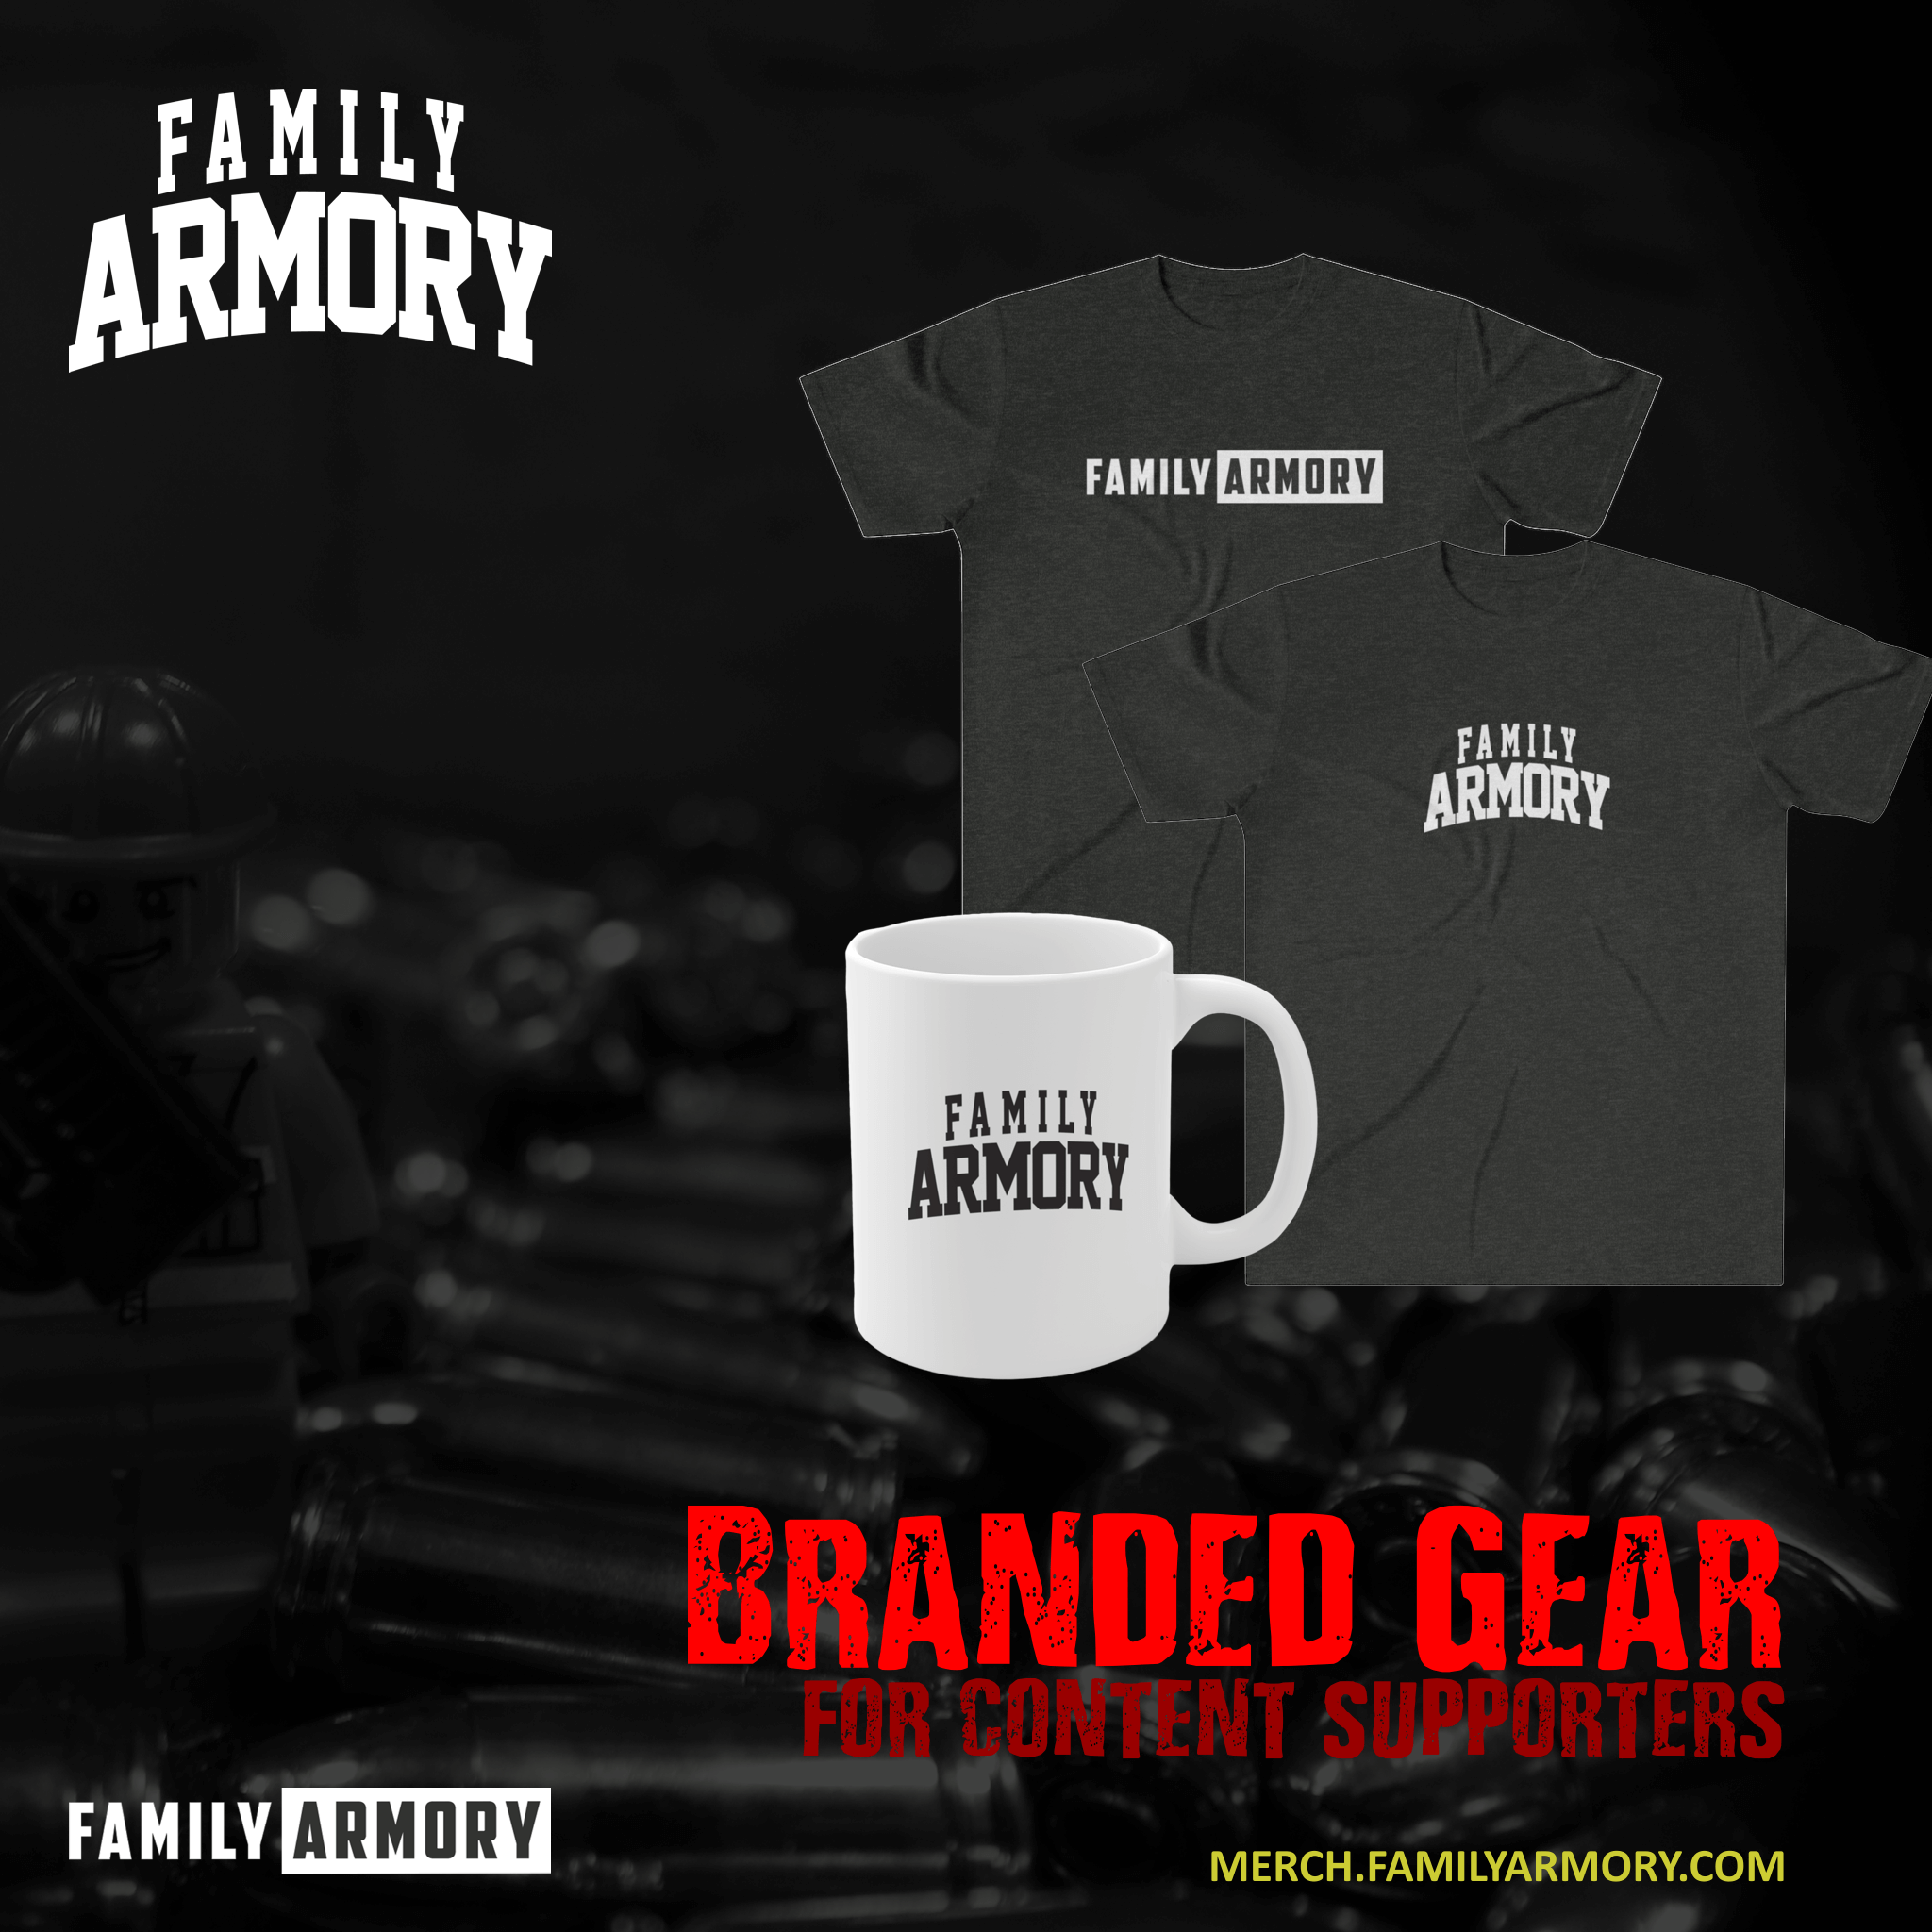 FAMILY ARMORY MIDLAND-ODESSA TEXAS GUN RANGE CONTENT SUPPORTER TSHIRT AND COFFEE MUG